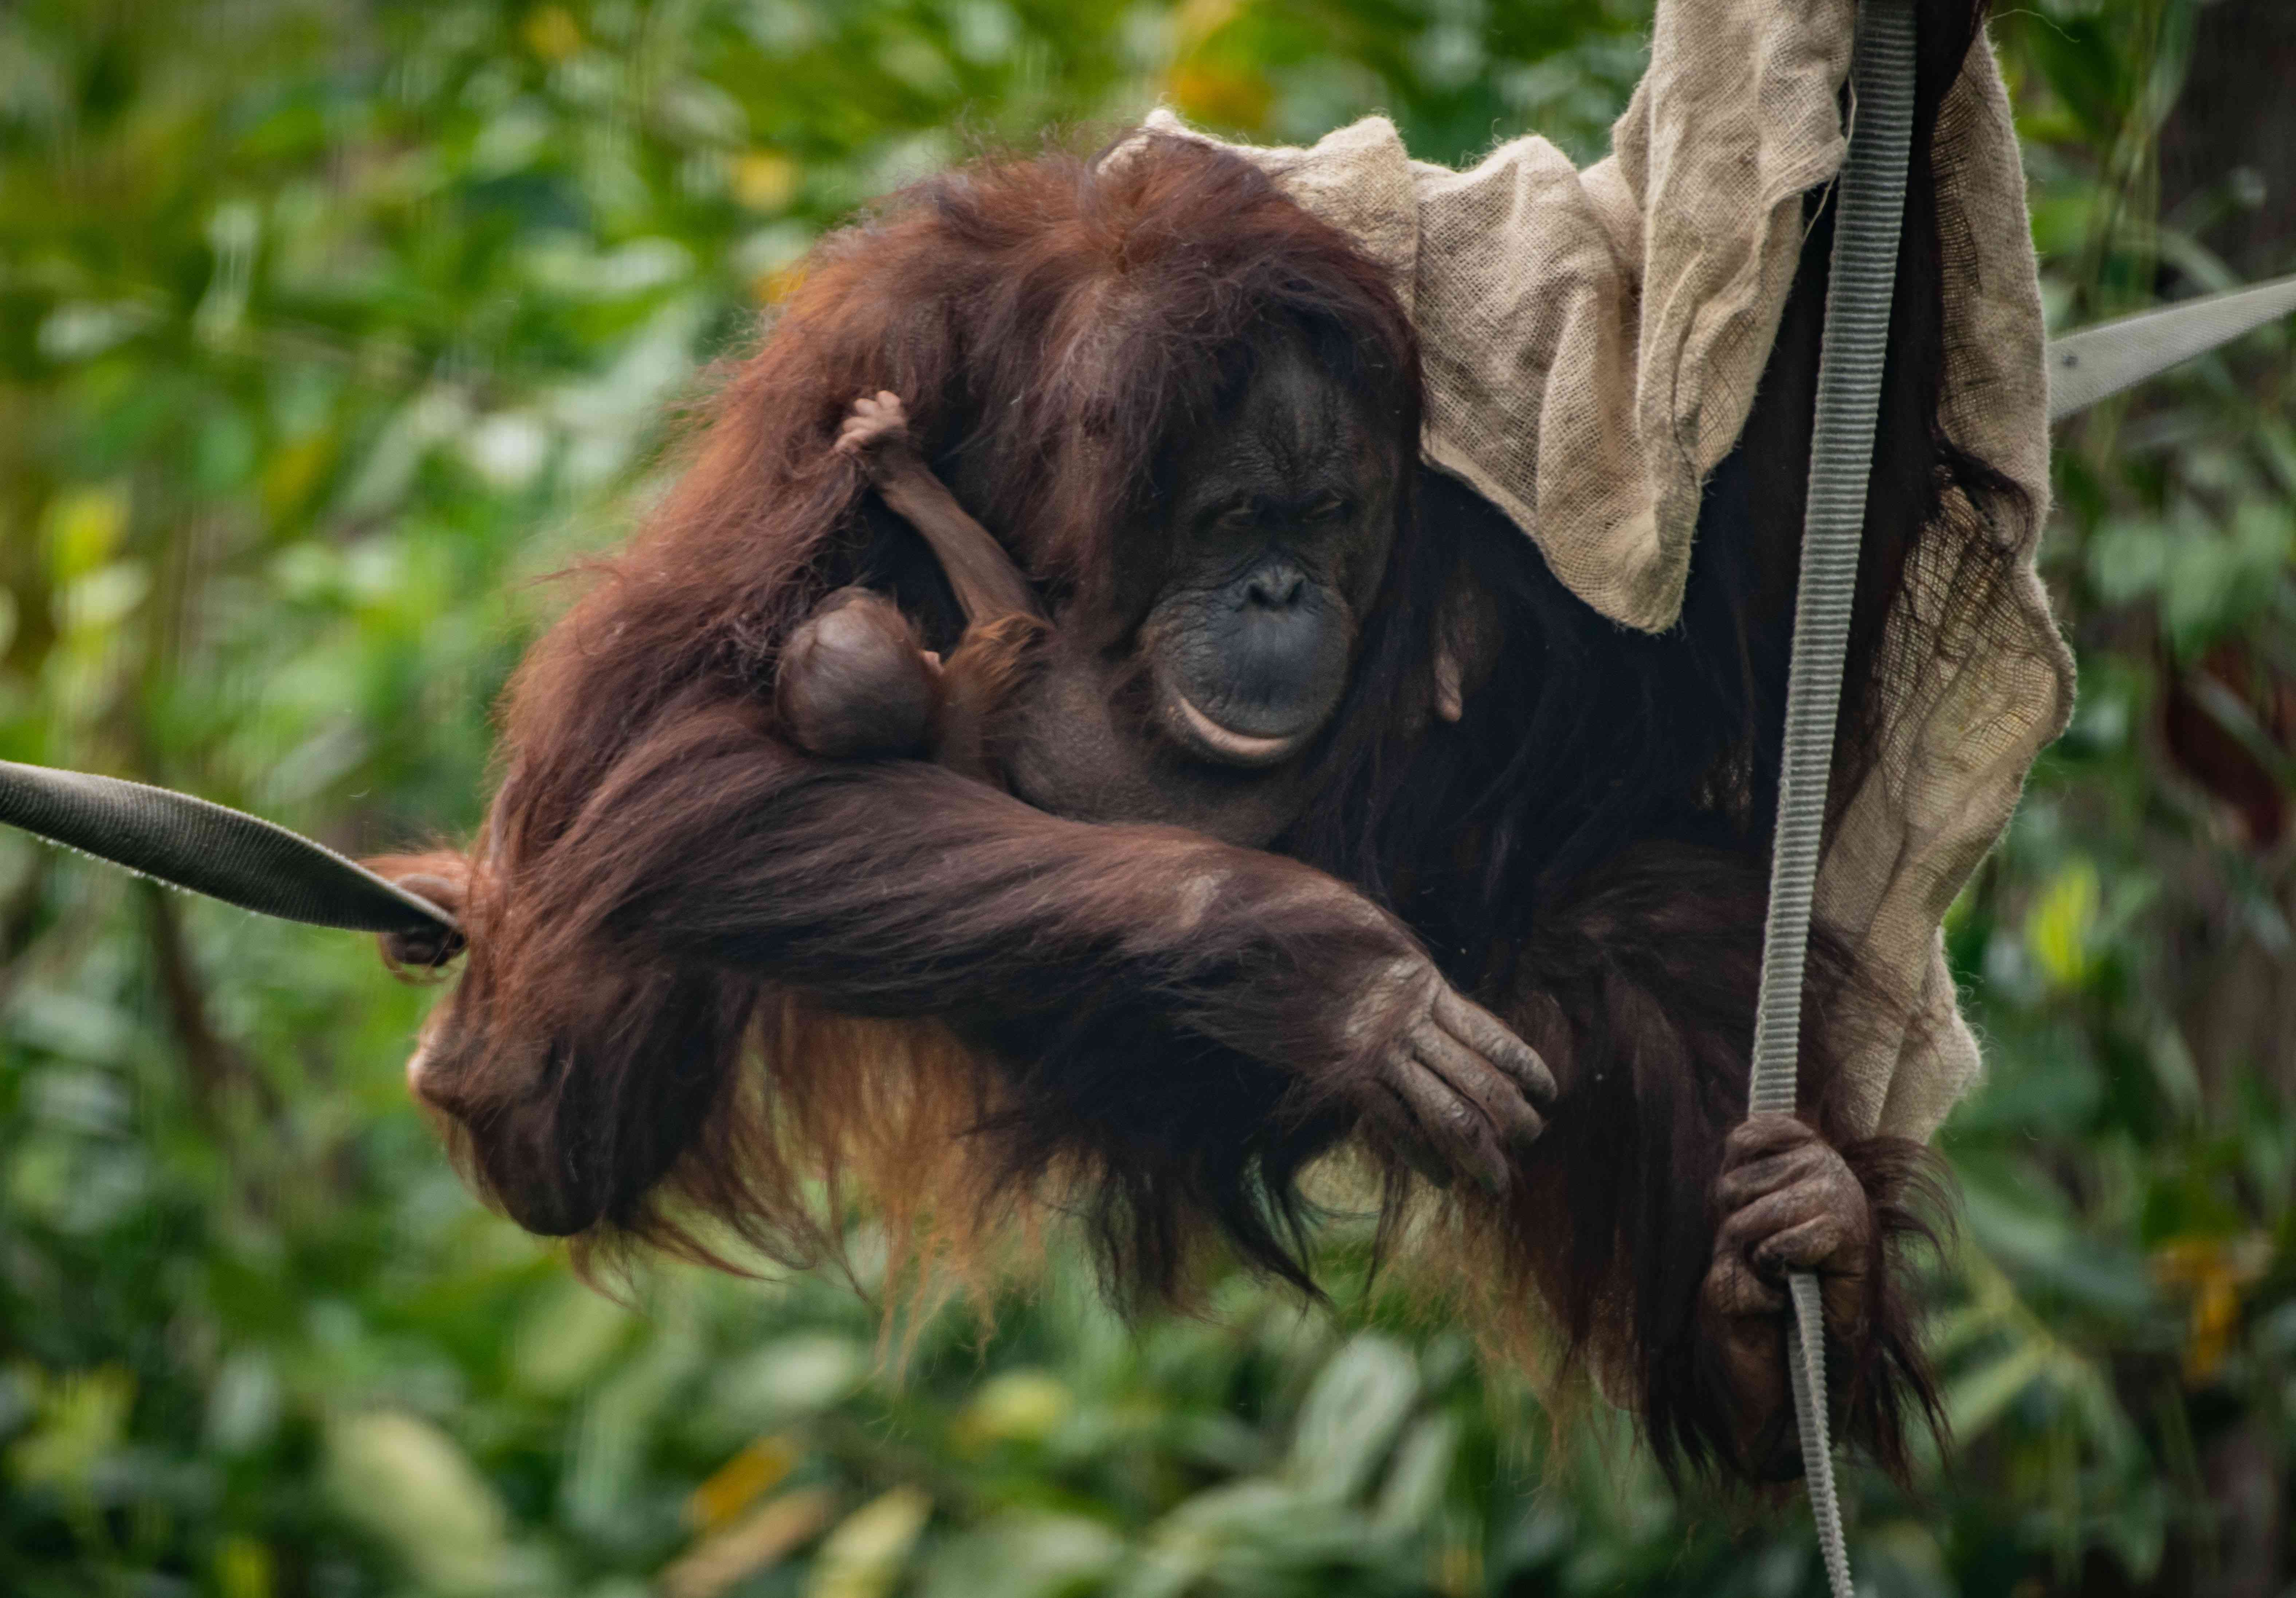 Mother orangutan and baby at Chester Zoo